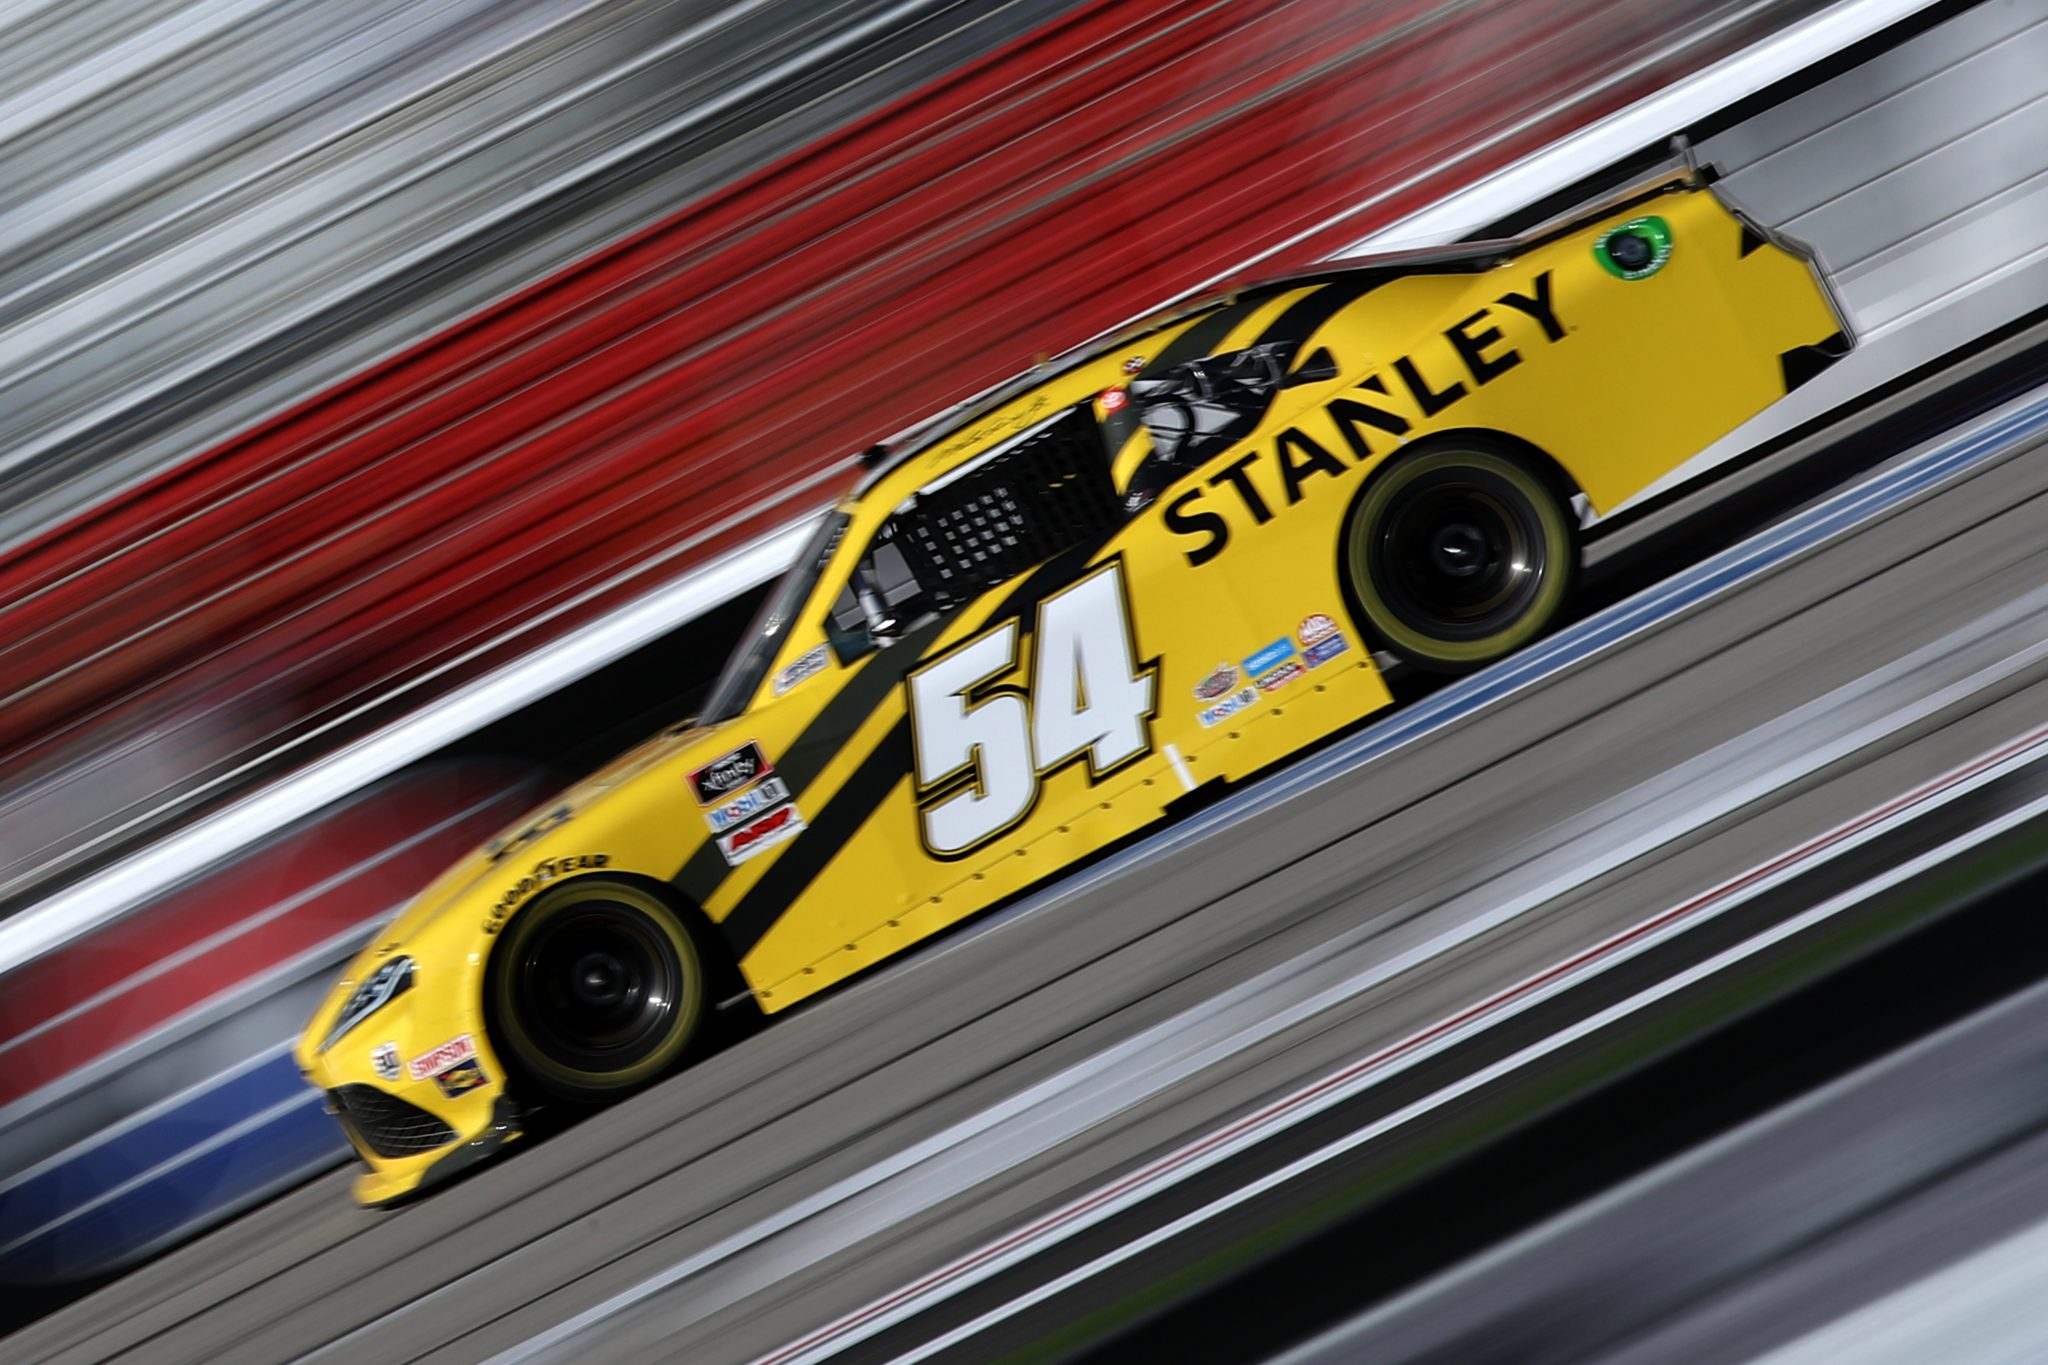 HAMPTON, GEORGIA - MARCH 20: Martin Truex Jr., driver of the #54 STANLEY Toyota, drives during the NASCAR Xfinity Series EchoPark 250 at Atlanta Motor Speedway on March 20, 2021 in Hampton, Georgia. (Photo by Sean Gardner/Getty Images) | Getty Images